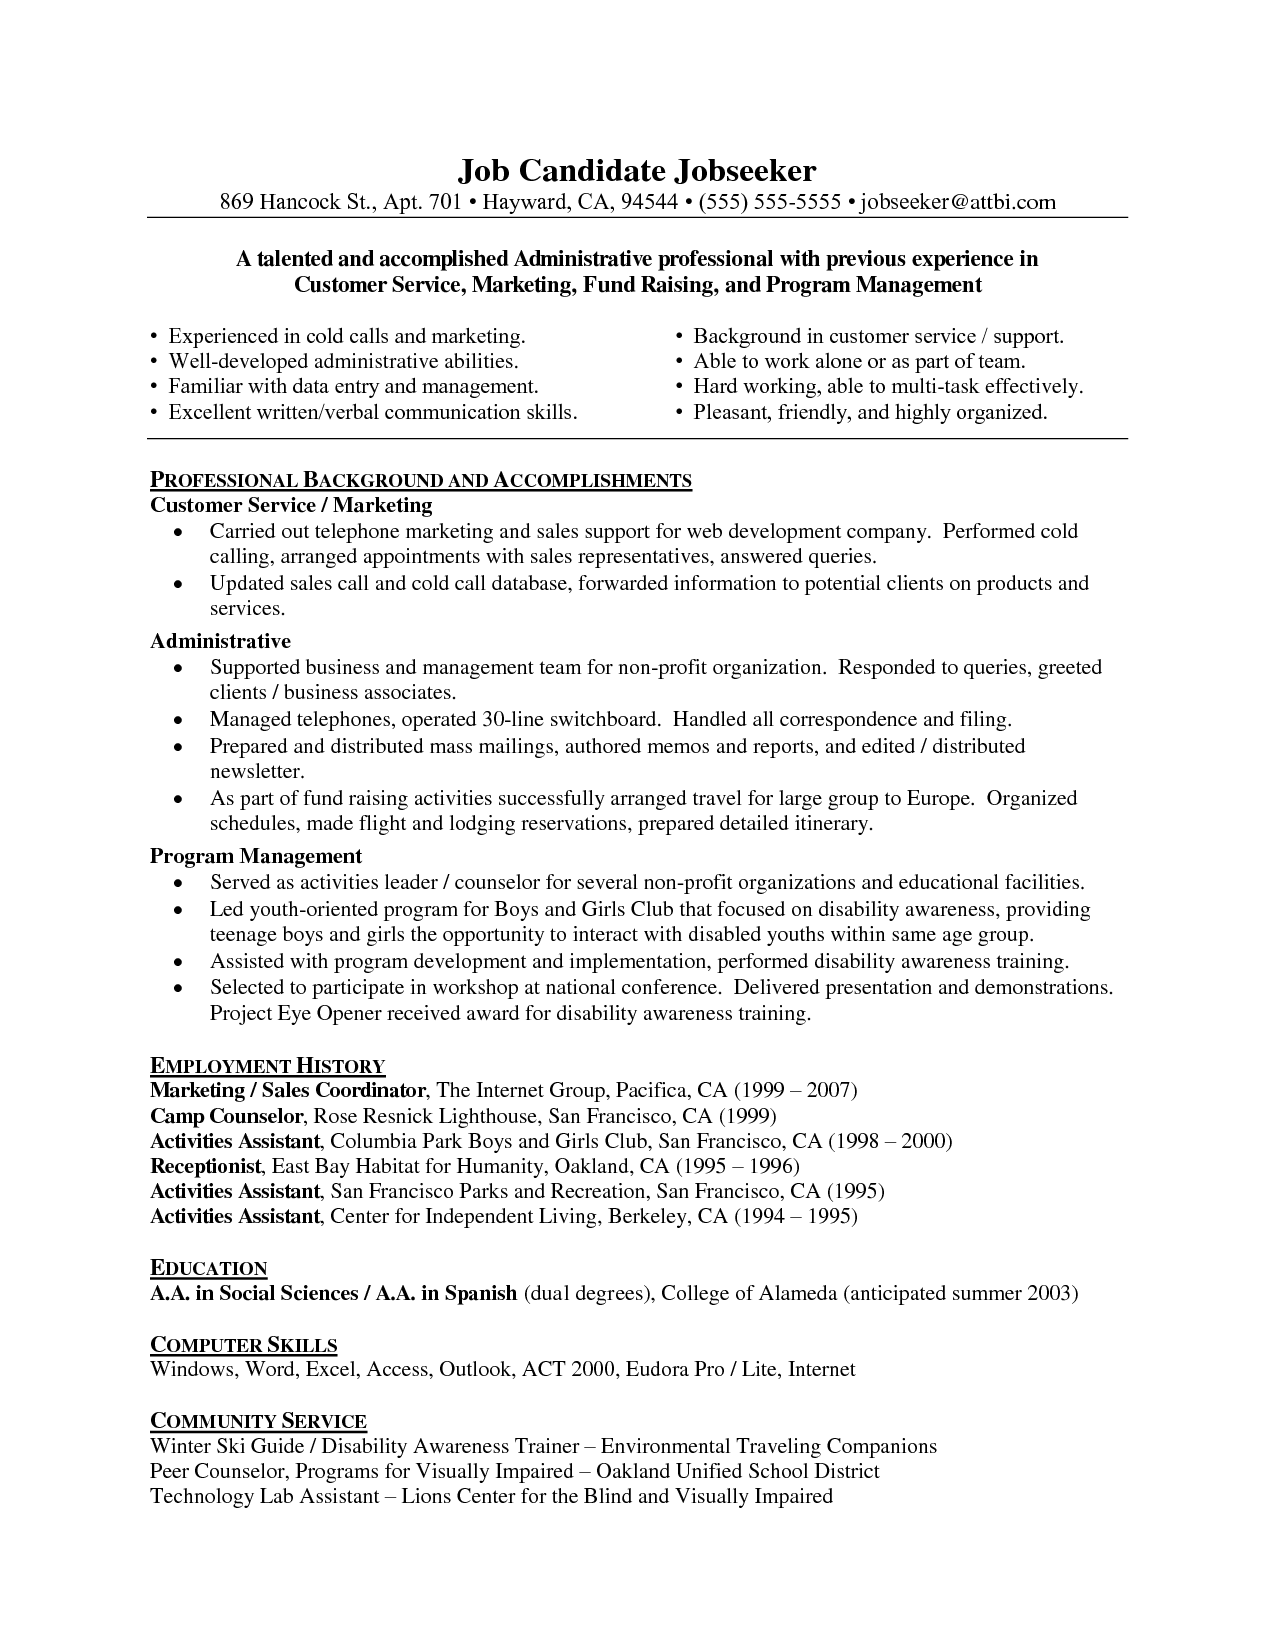 Resume Resume For Customer Service Representative For Call Center sample resume for a customer service representative free business representative